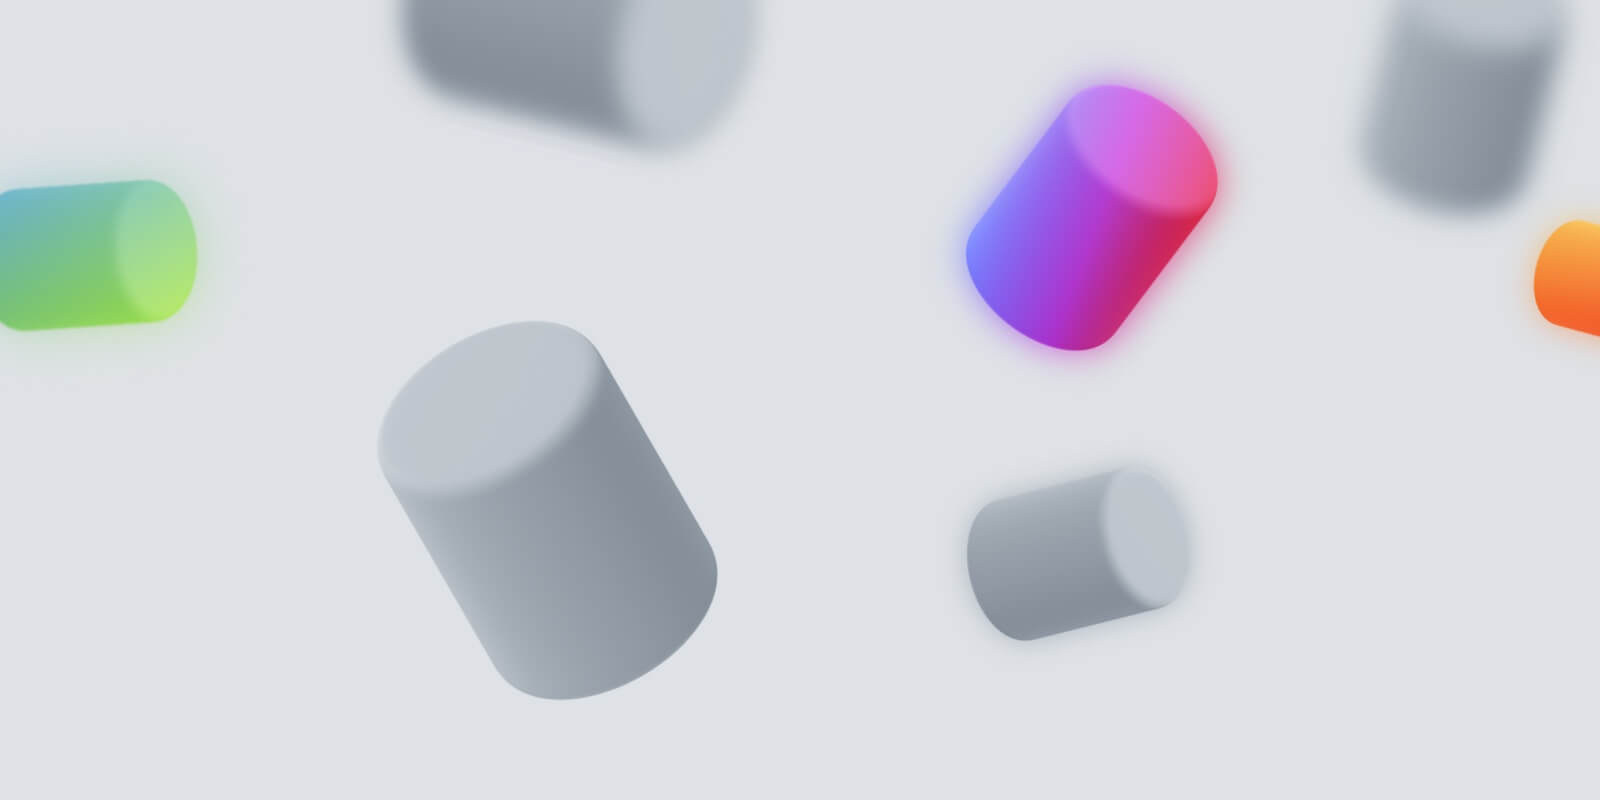 Cylinders 3D